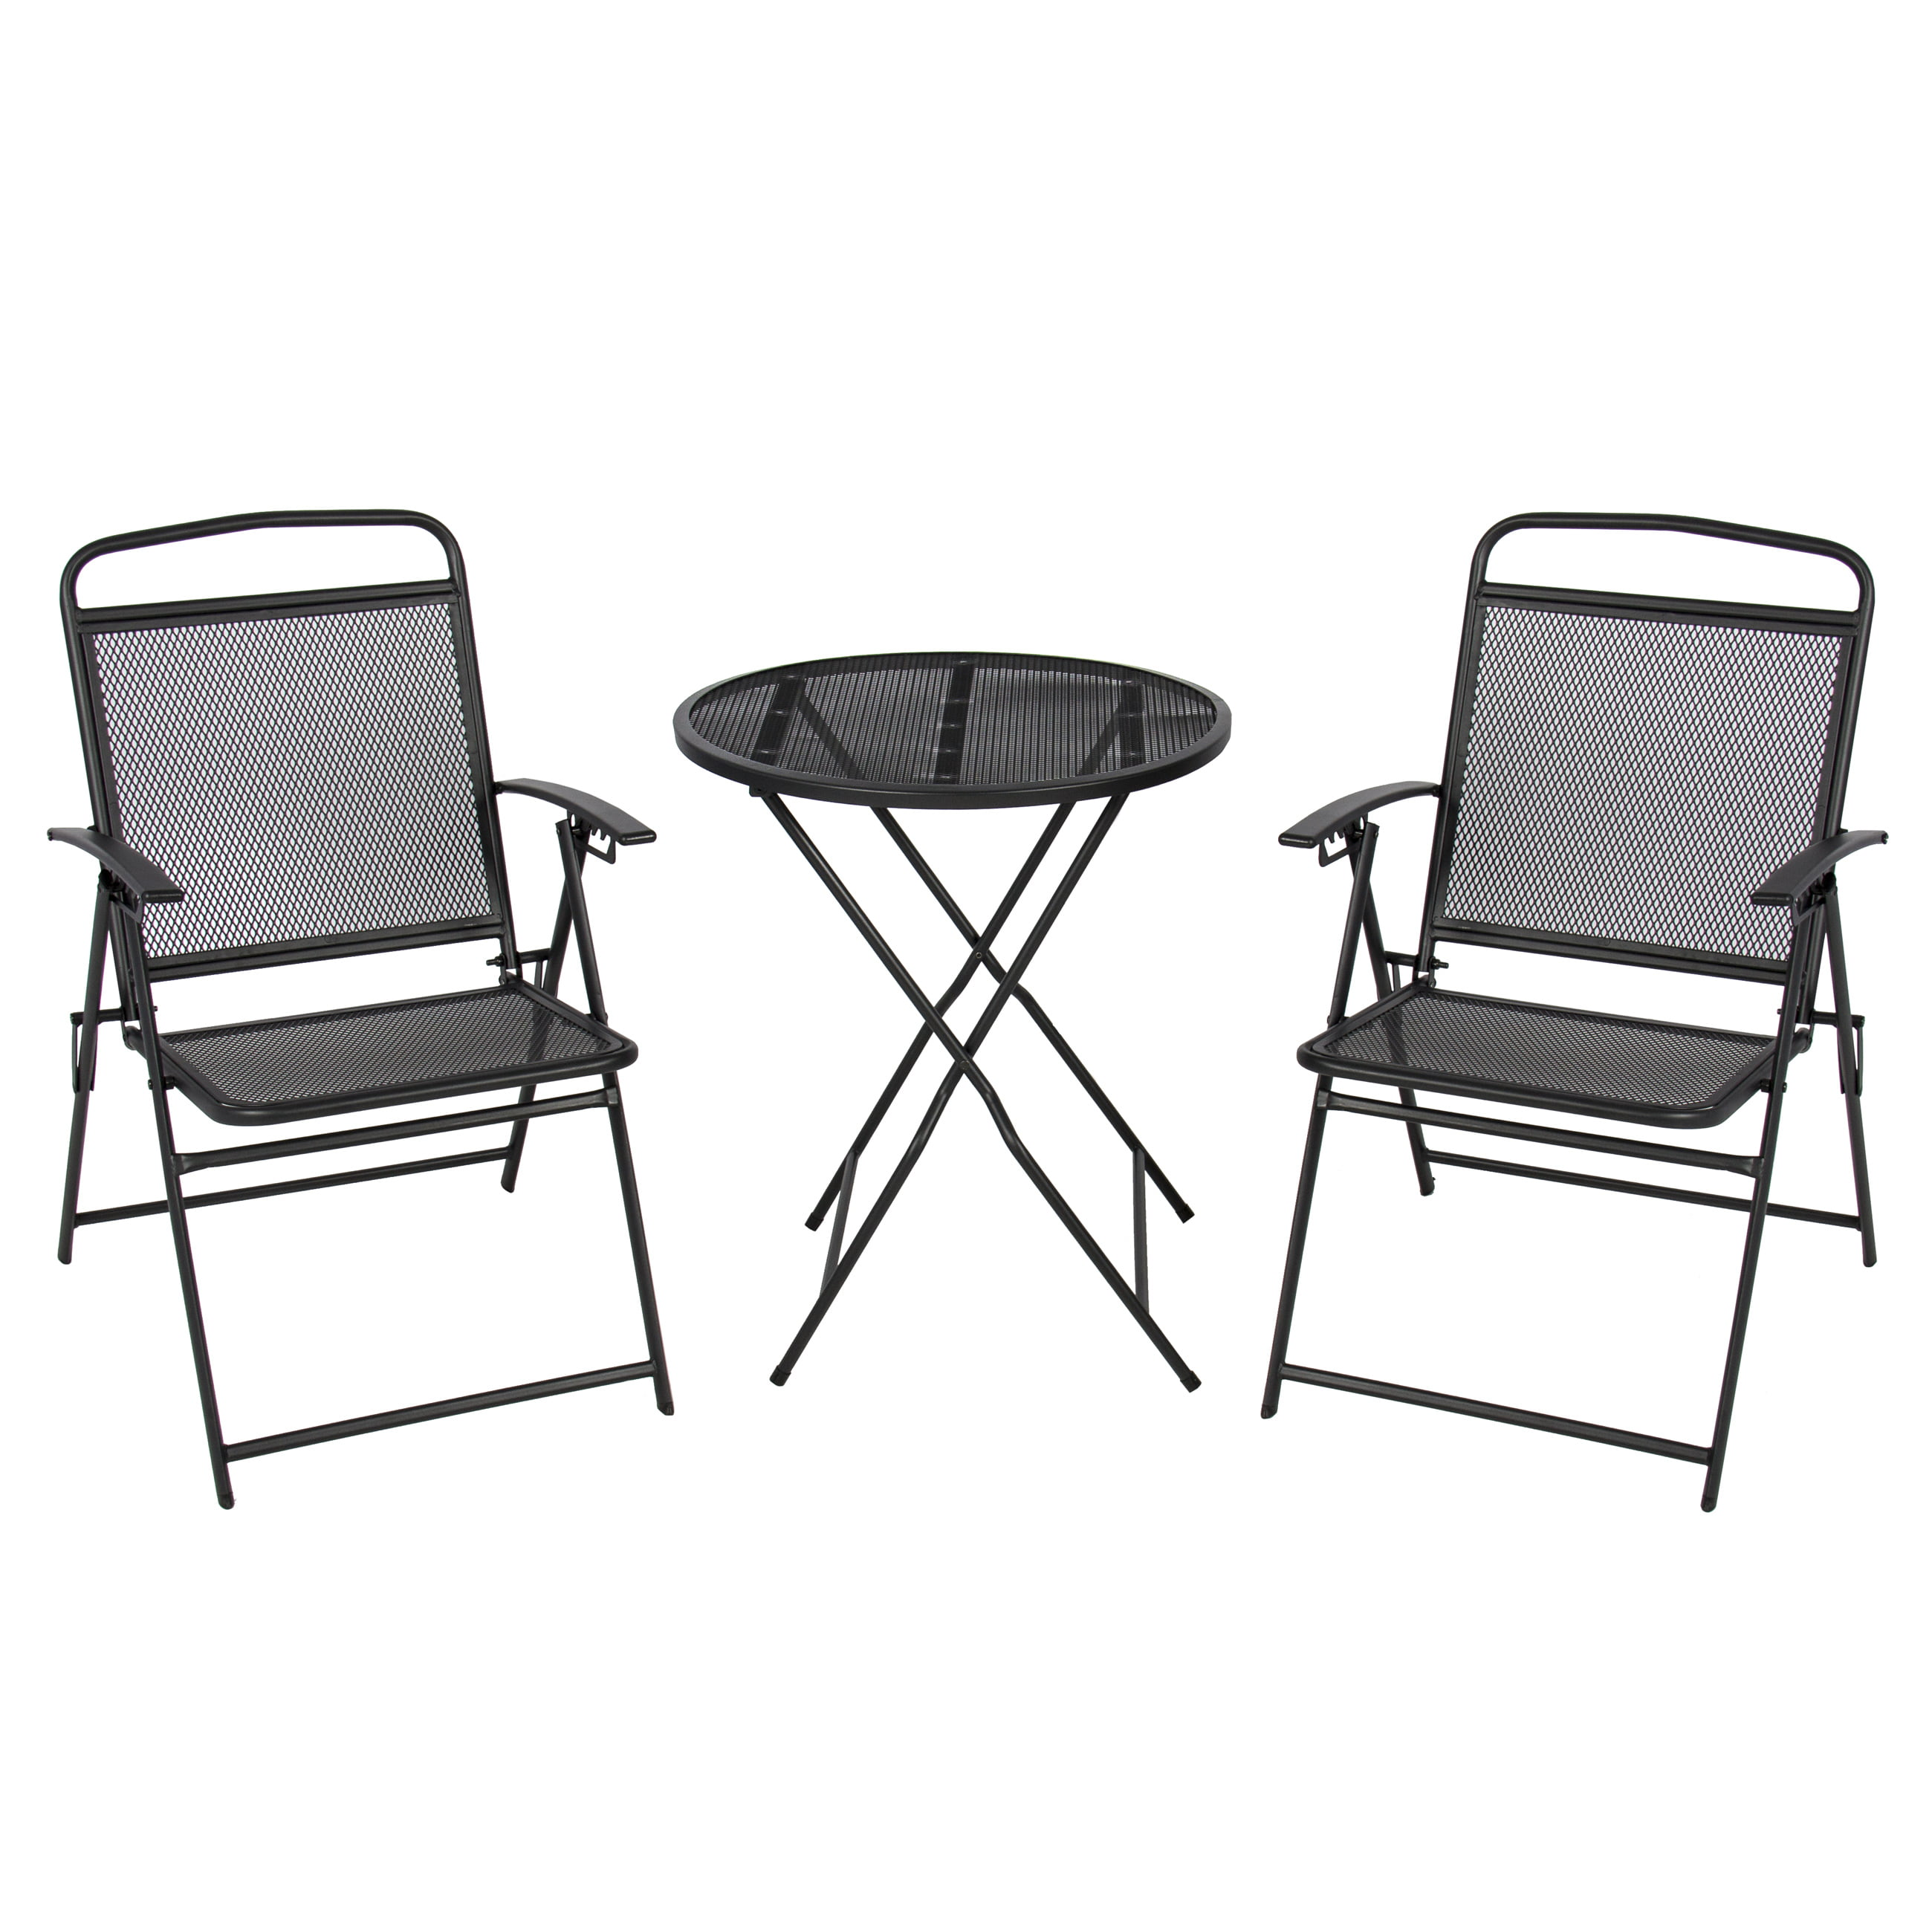 Best Choice Products 3-Piece Adjustable Foldable Compact Outdoor Bistro Set w  Reclining Chairs Black by Best Choice Products